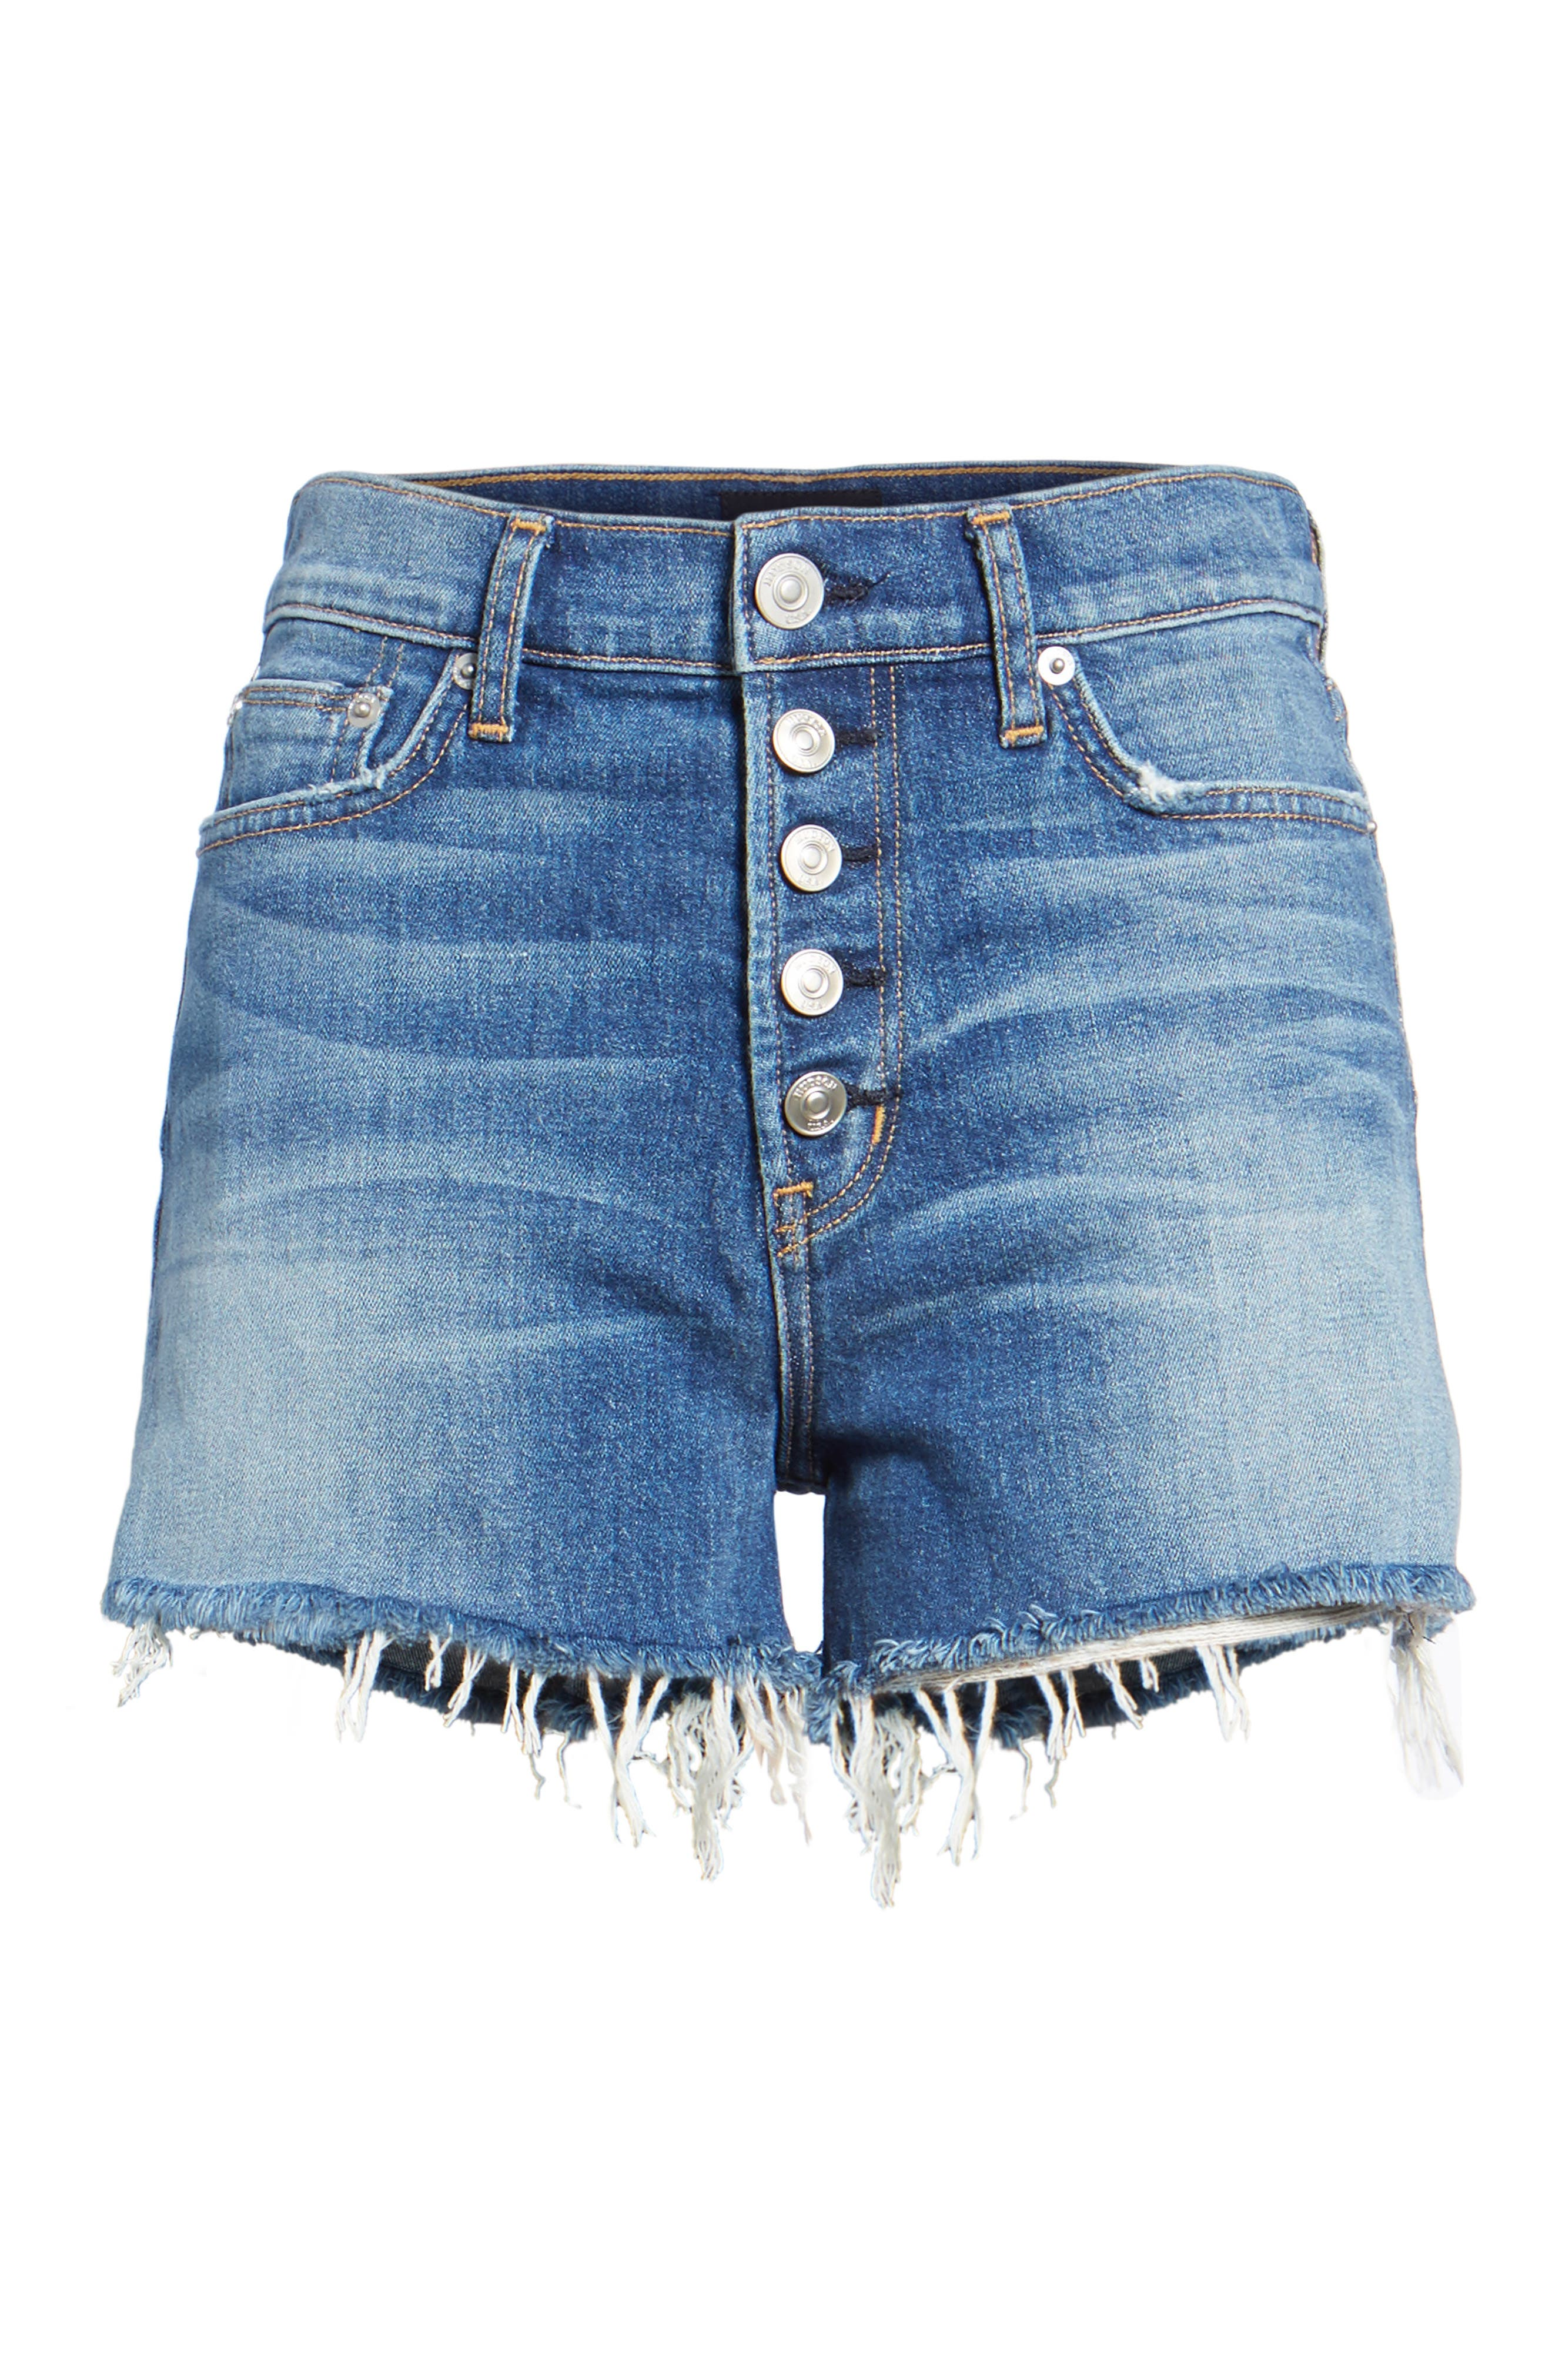 Zoeey High Waist Cutoff Denim Shorts,                             Alternate thumbnail 6, color,                             420